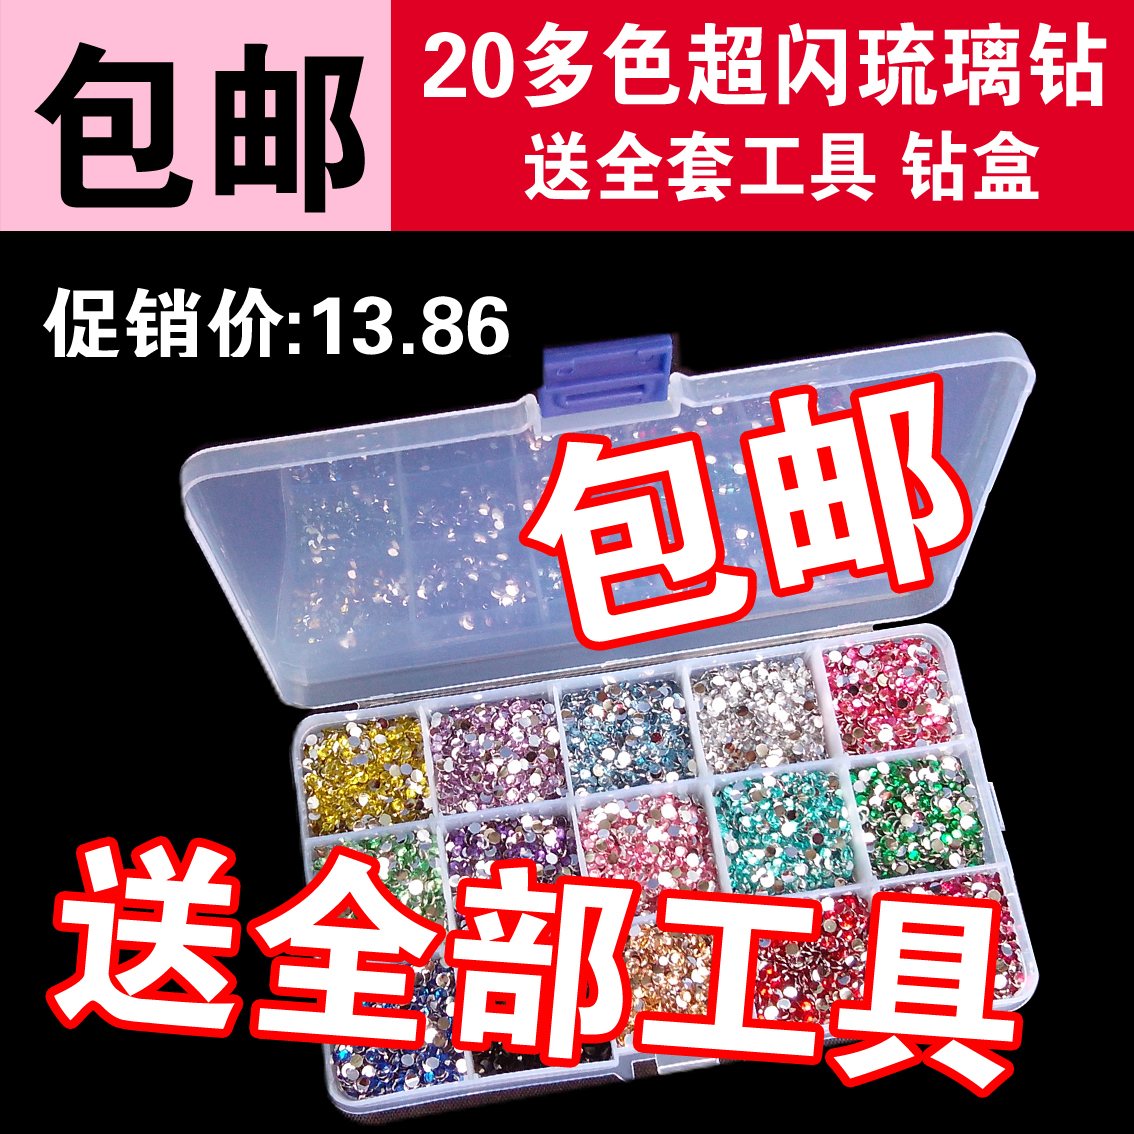 Shipping mobile phone shell DIY manual paste drilling manual material package package package beauty hair Manicure diamond gift